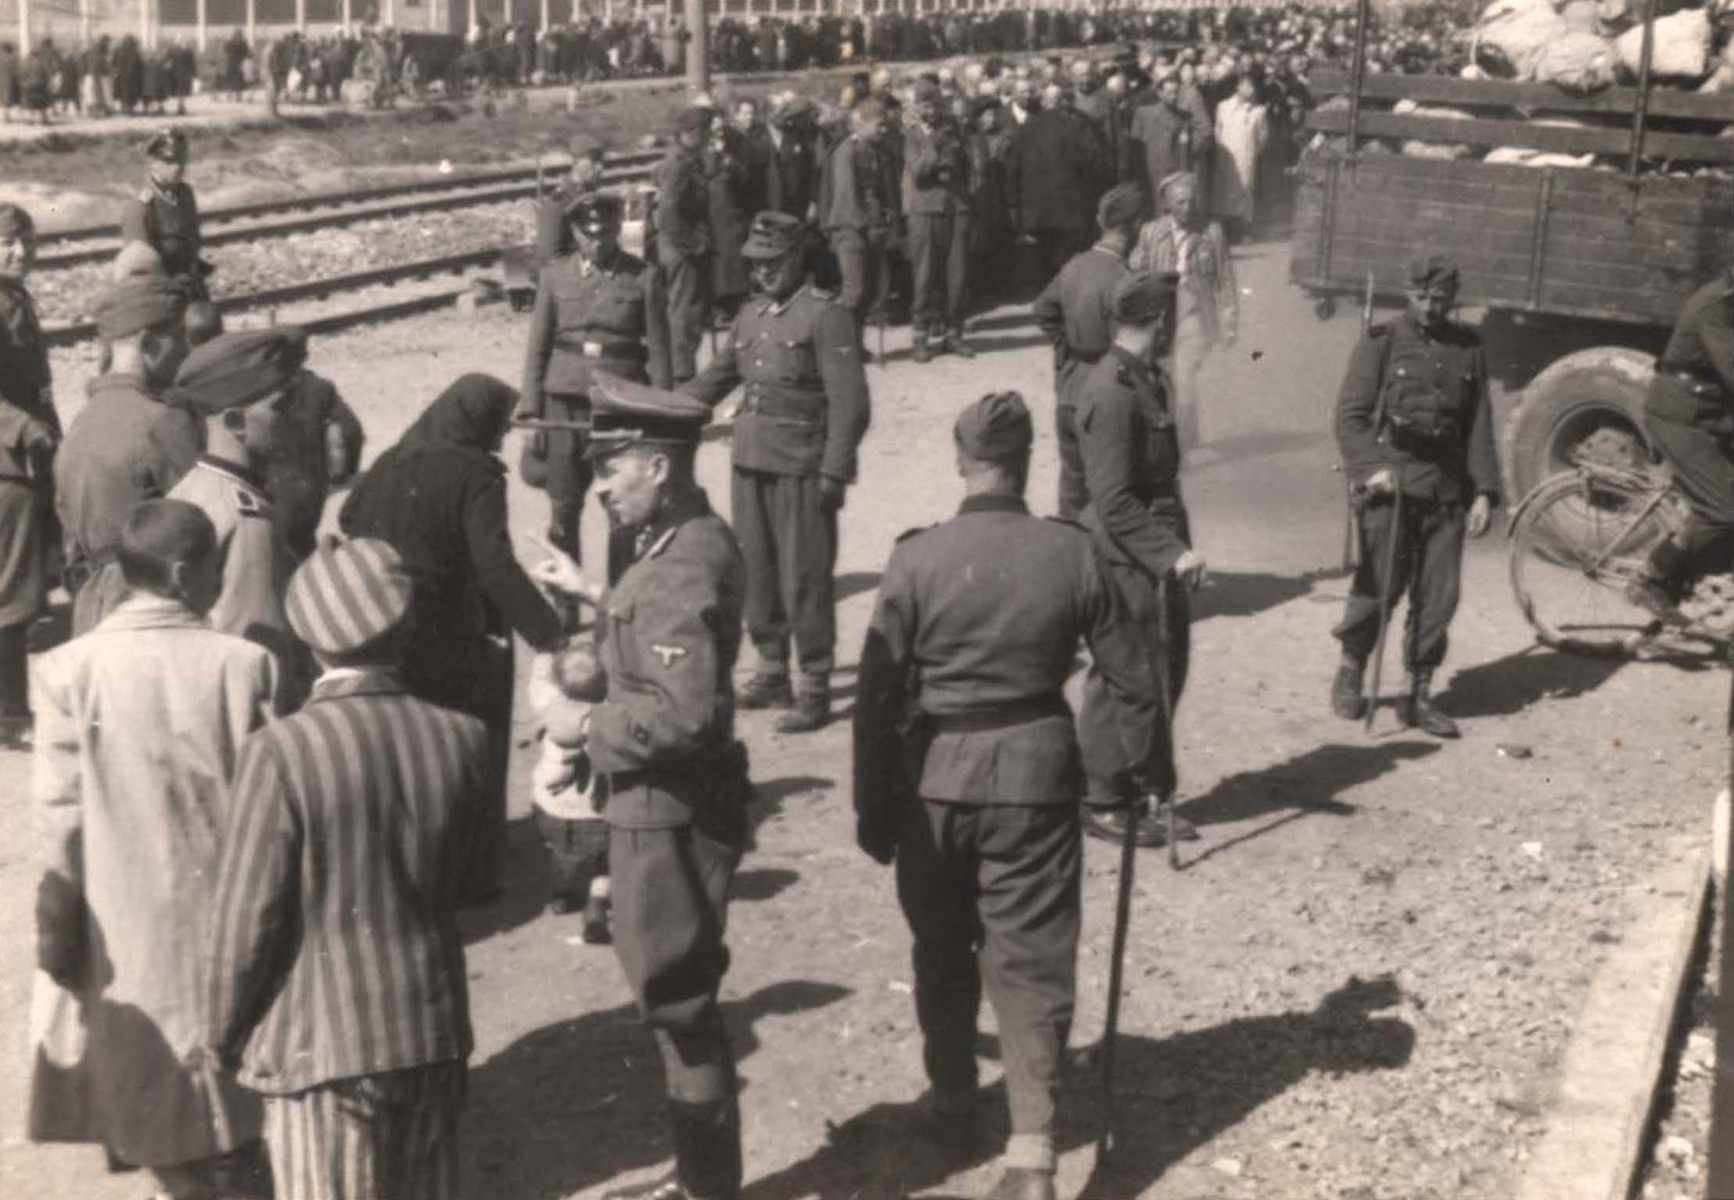 Jews from Subcarpathian Rus await selection on the ramp at Auschwitz-Birkenau.  In the foreground prisoners from the Kanada commando stand near a group of SS men.    Among those pictured is Hans Schorr (the prisoner dressed in a striped uniform standing behind the truck) and Gyorgi Havas in the white coat.